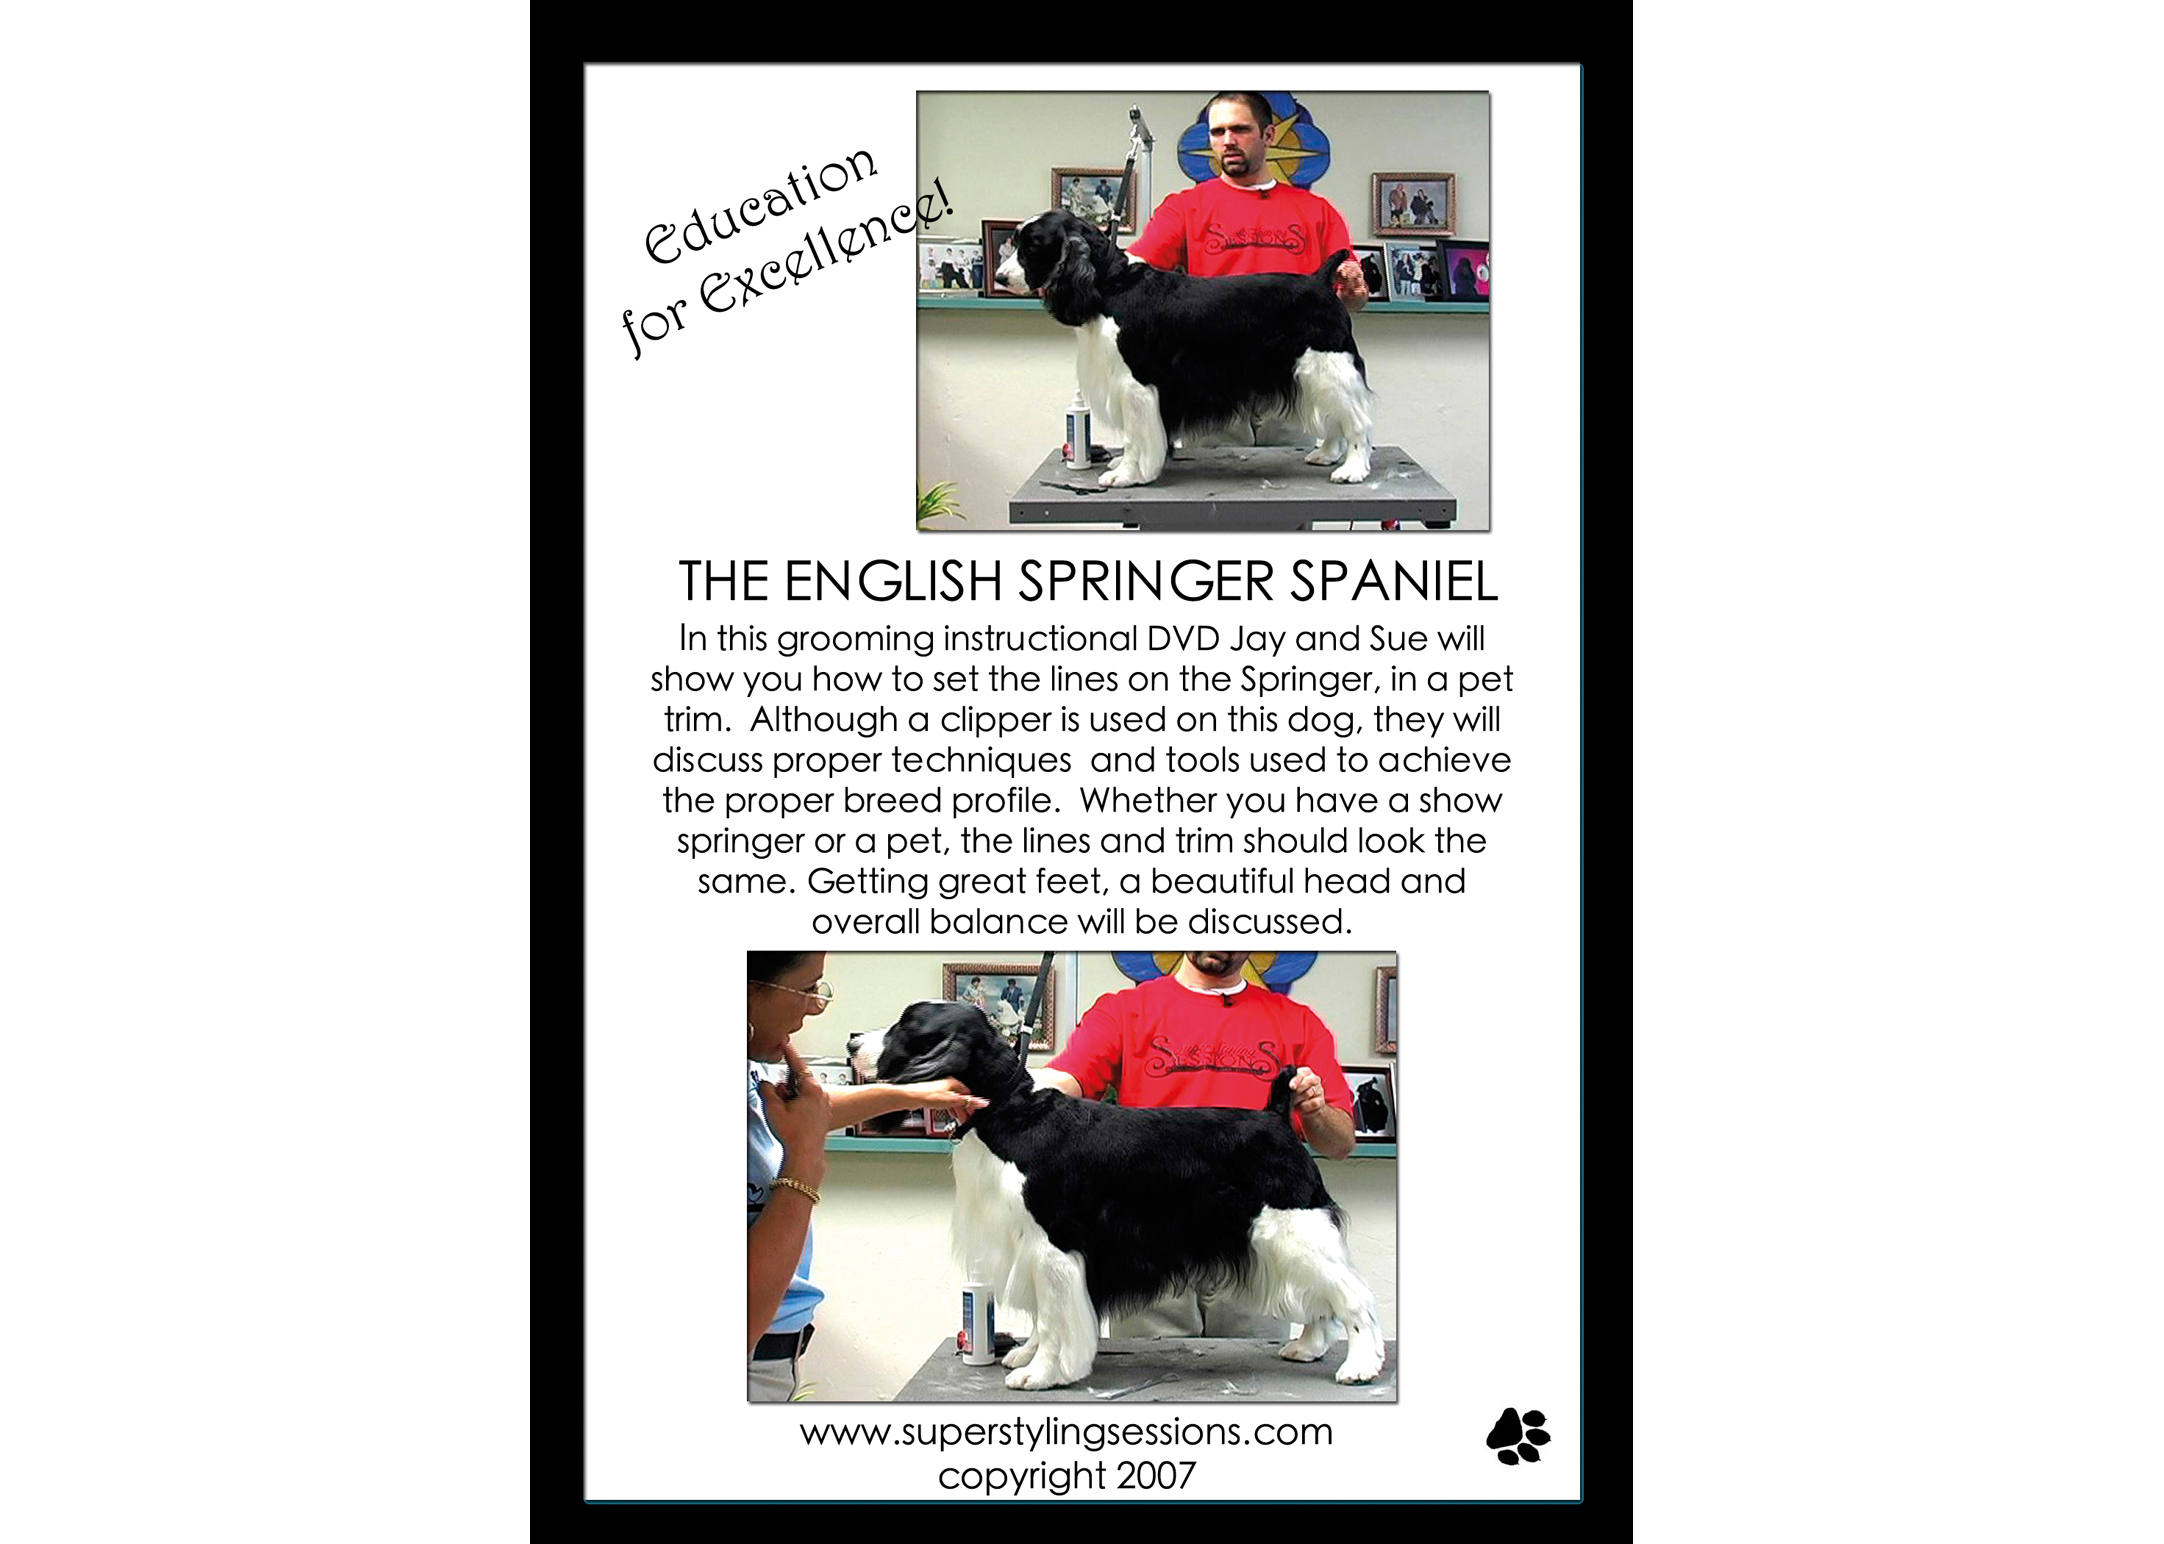 Super Styling Sessions DVD Super Styling Sessions Springer Spaniel Educatieve DVD